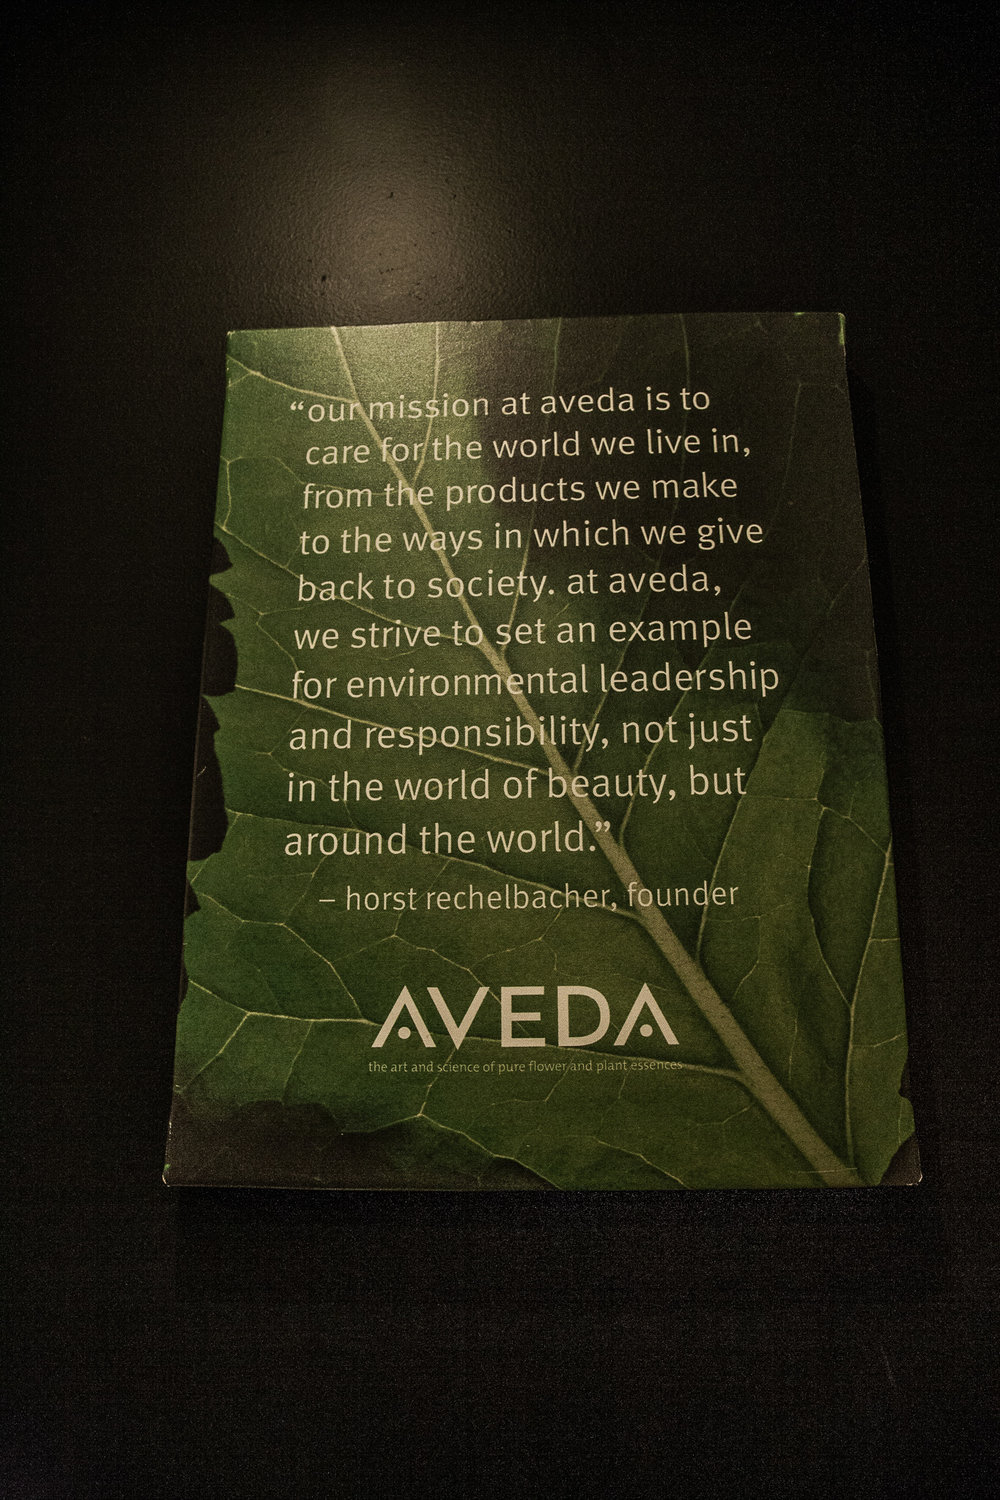 We are a proud Aveda Concept Salon!  - Many salons you may find have a shelf or two of Aveda products.  At Hidden Oasis, we have a complete commitment to Aveda and it's mission.  Our Salon uses only top quailty Aveda products from color application to finishing and styling.